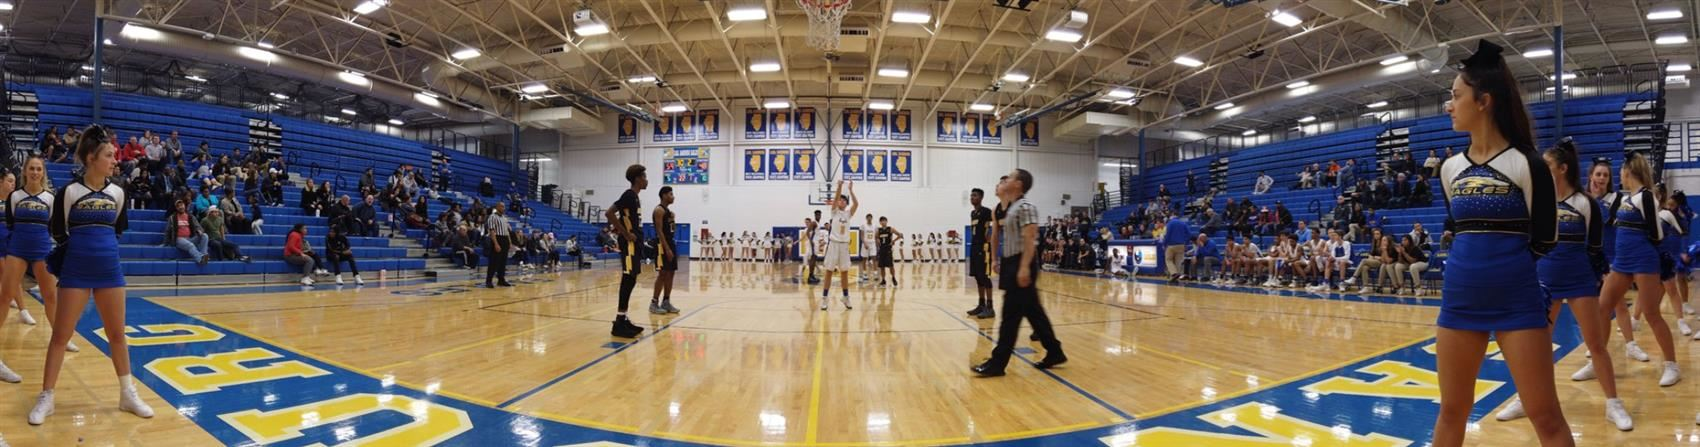 A Sandburg Varsity Basketball player shoots a free-throw in their game against Victor J. Andrew High School